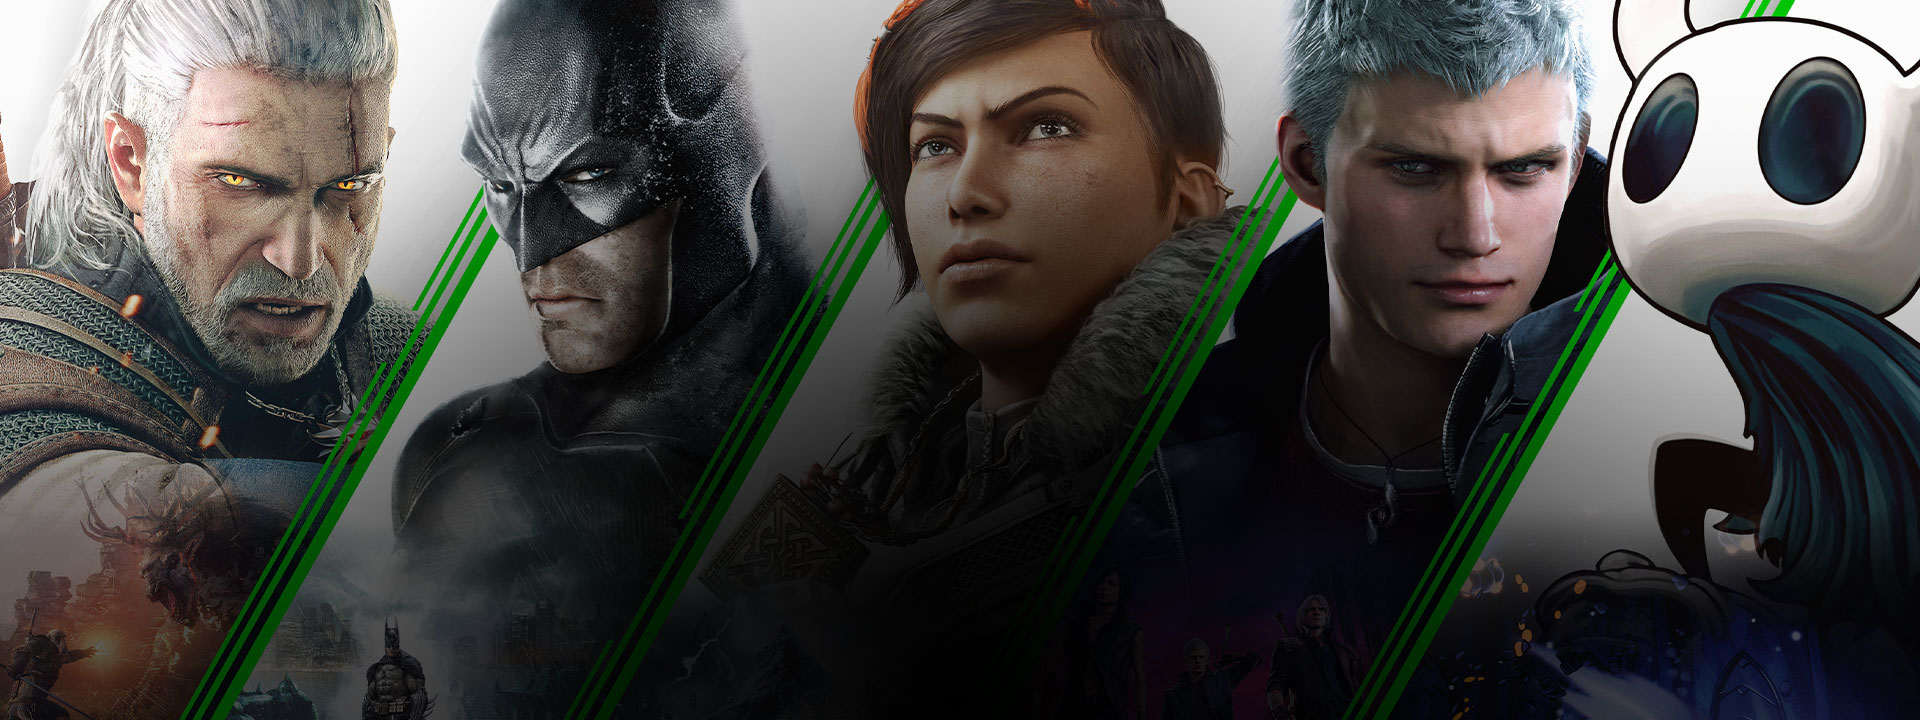 The Witcher 3: Wild Hunt, Batman (Arkham Series), Gears 5, Devil May Cry 5 ve Hollow Knight gibi Xbox'ta mevcut oyunlardan oluşan bir kolaj.